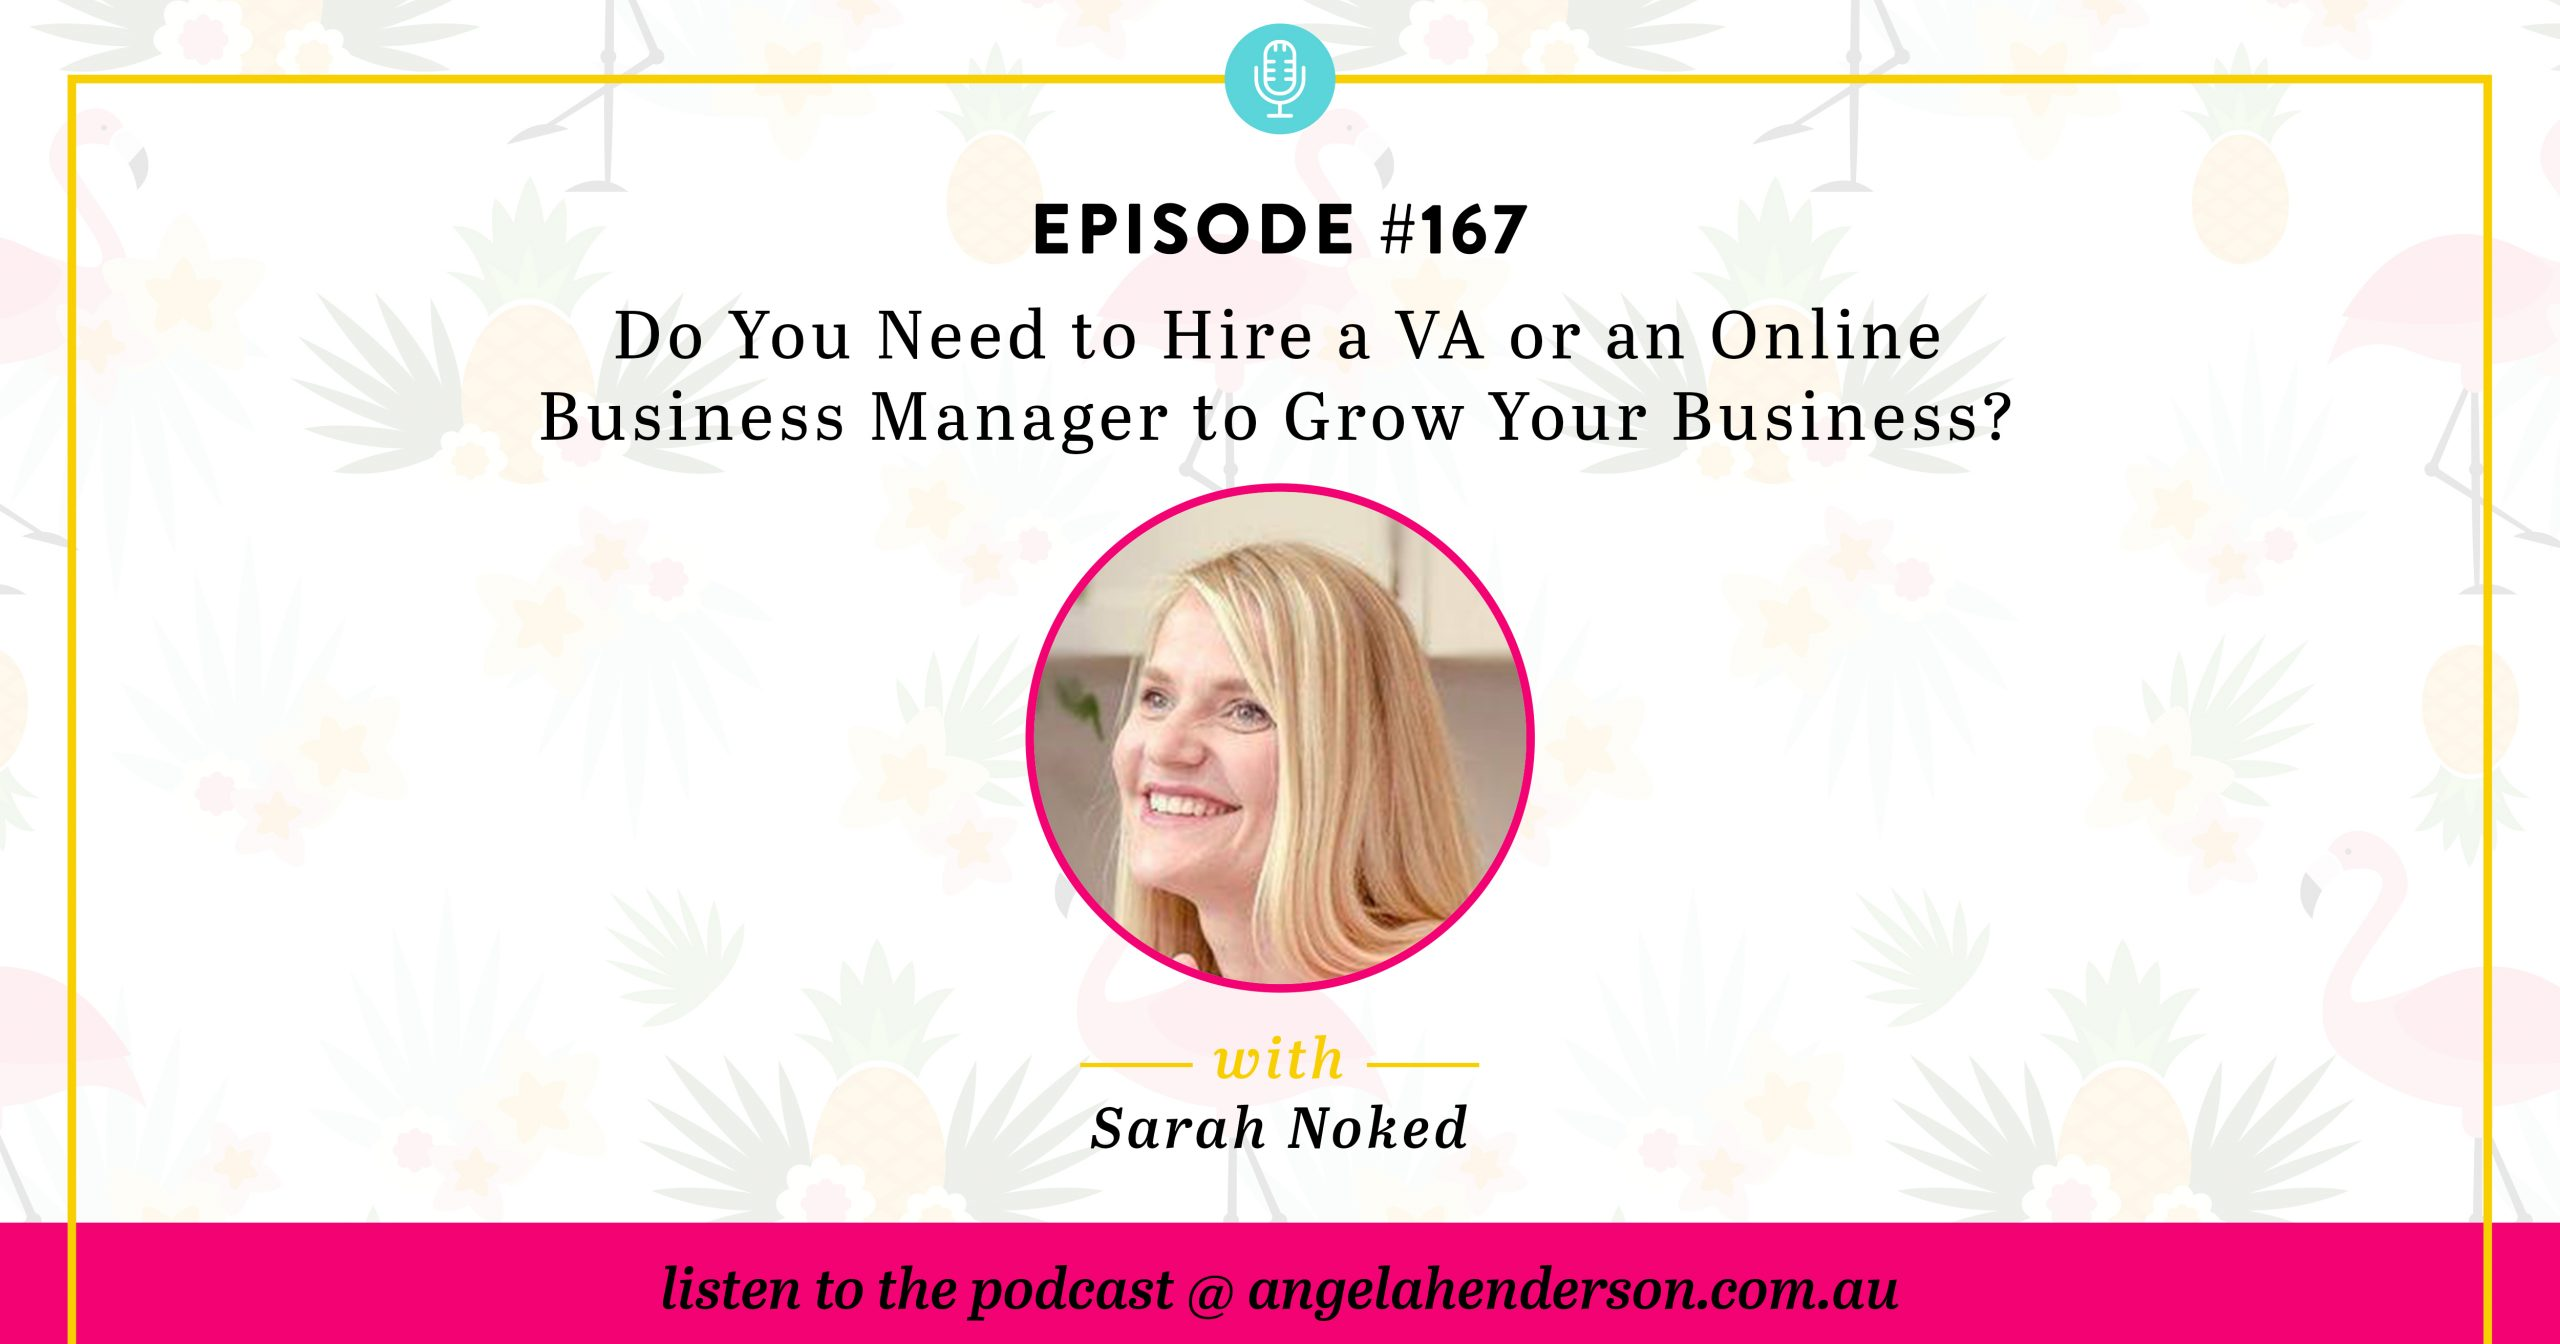 Do You Need to Hire a VA or an Online Business Manager to Grow Your Business?